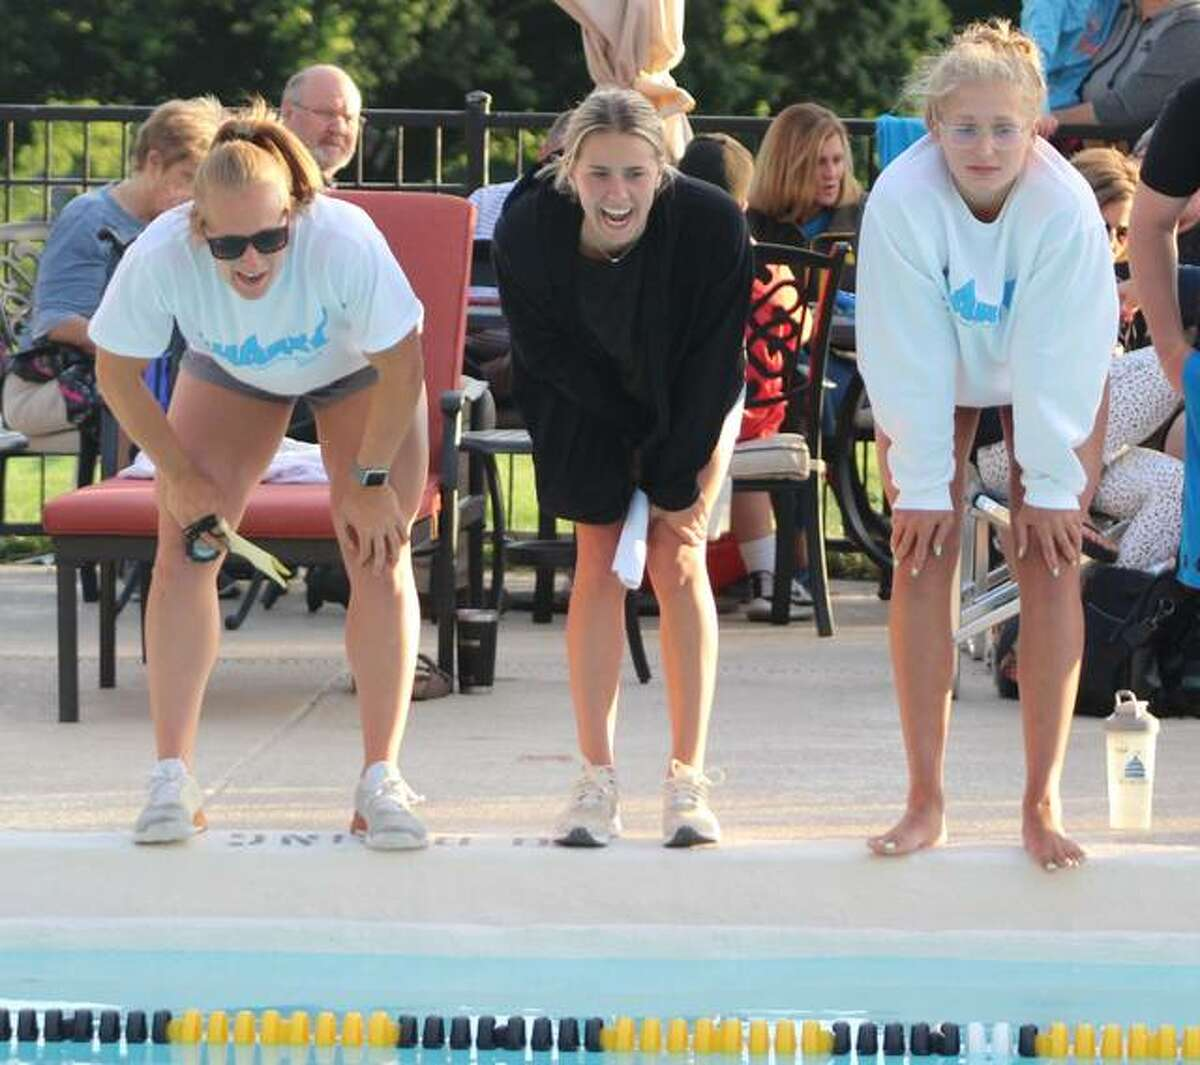 Summers Port head coach Maddie Monroe, left, and assistant coaches Ginny Schranck, center, and Anna Moehn cheer on a Sharks swimmer at the SWISA Relays meet. The Sharks fell to Paddlers of Granite City Tuesday in their last dual meet of the season and will play host to the SWISA Swim Championships Sunday in Godfrey.